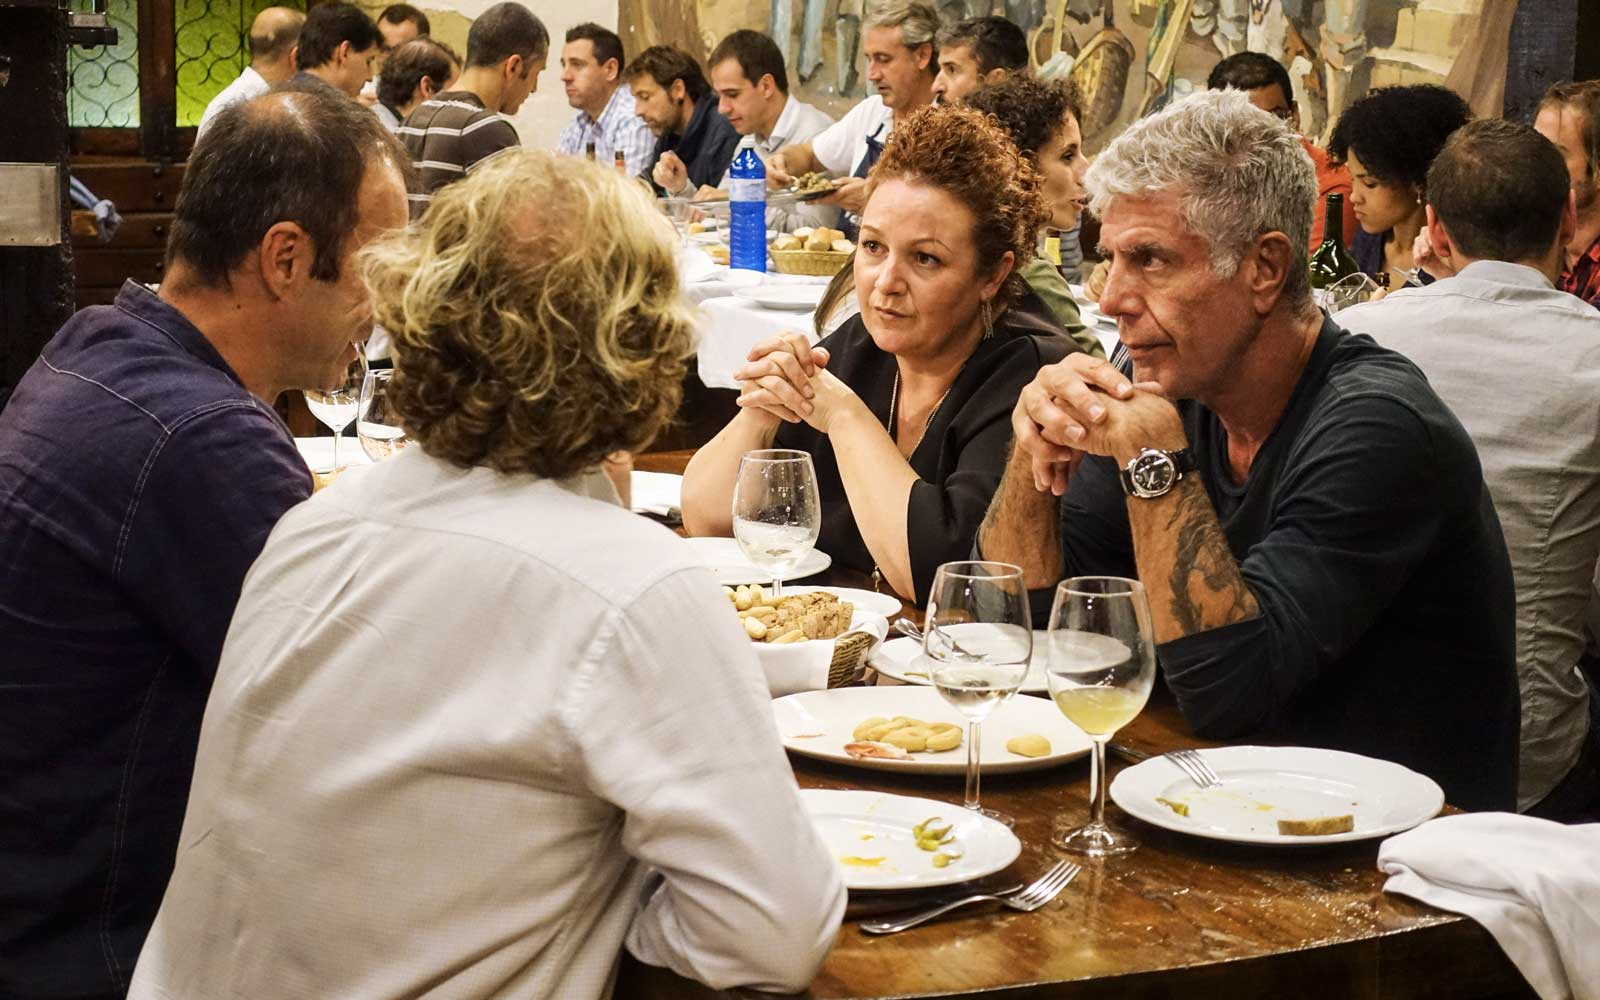 Anthony Bourdain Parts Unknown Ep 502 - Basque County